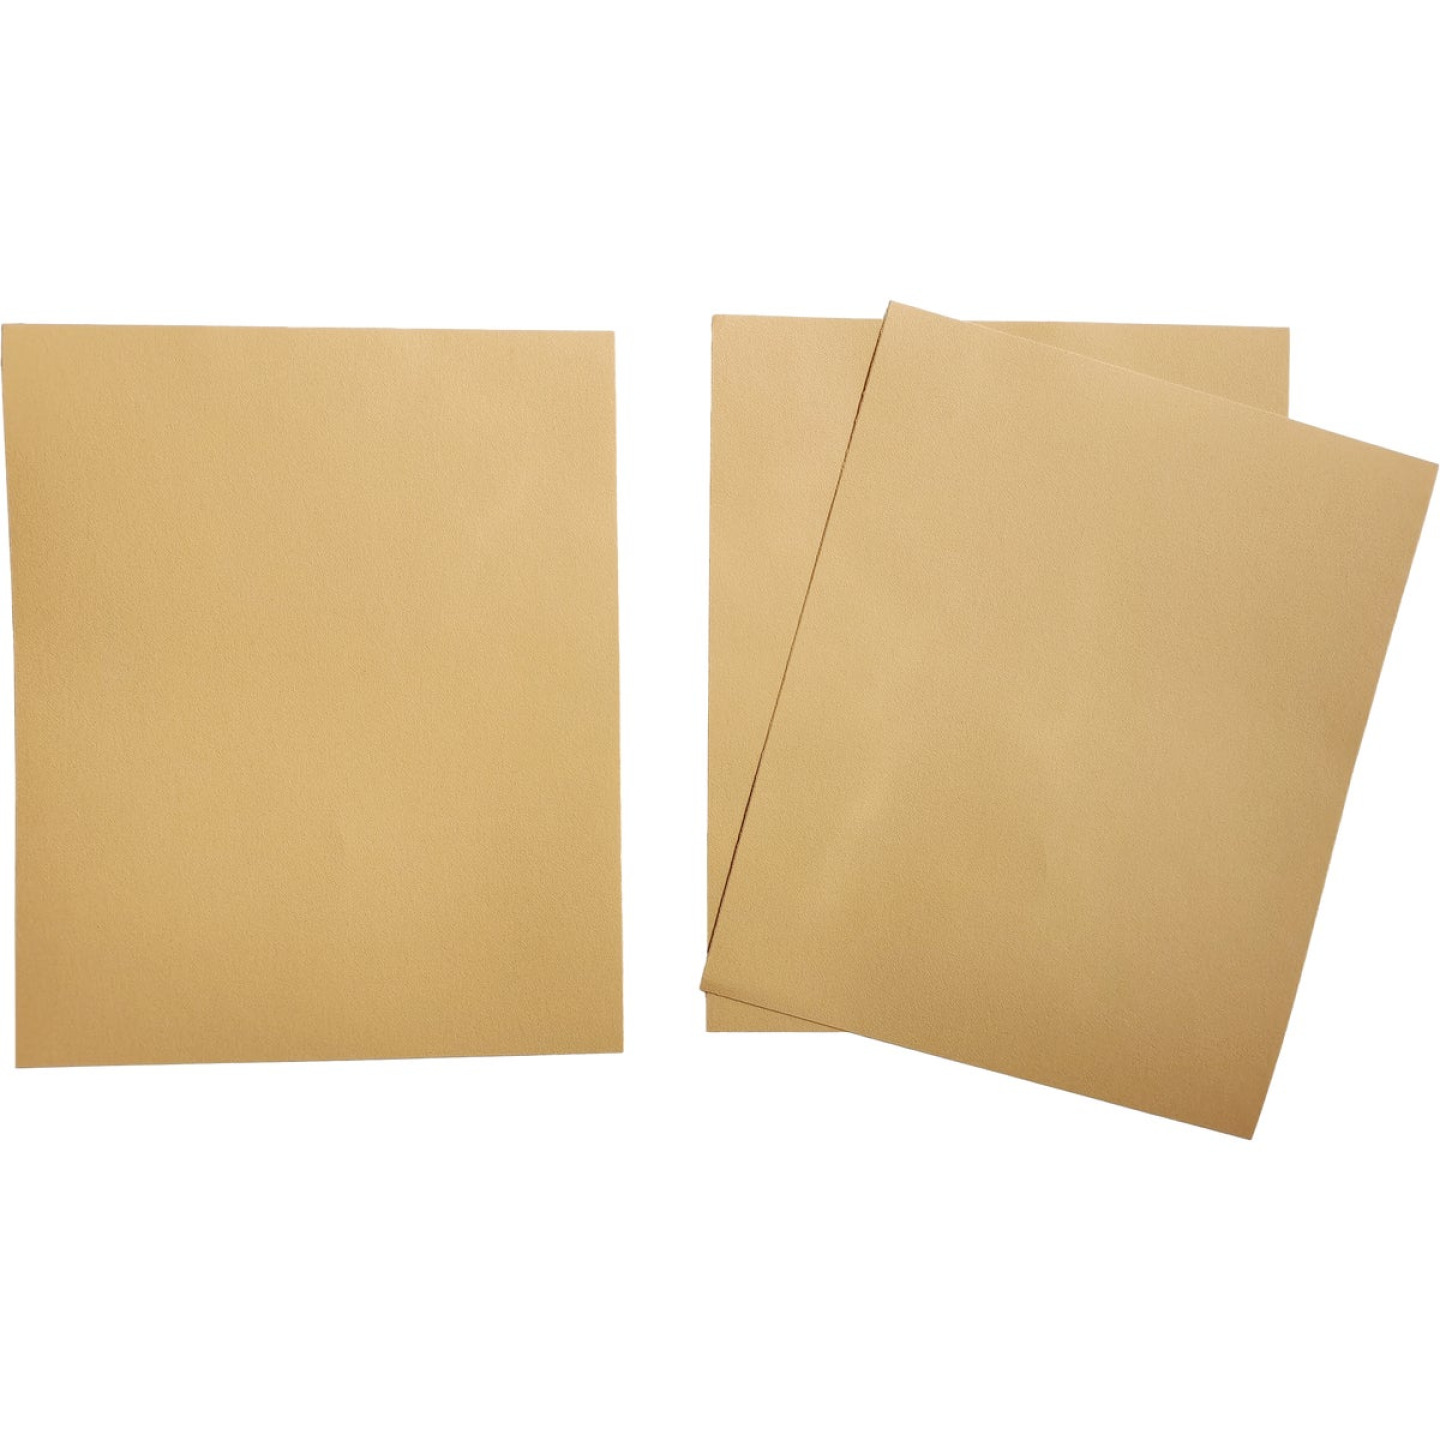 Boss Premium 9 In. x 11 In. 180 Grit Medium Sandpaper (3-Pack) Image 2